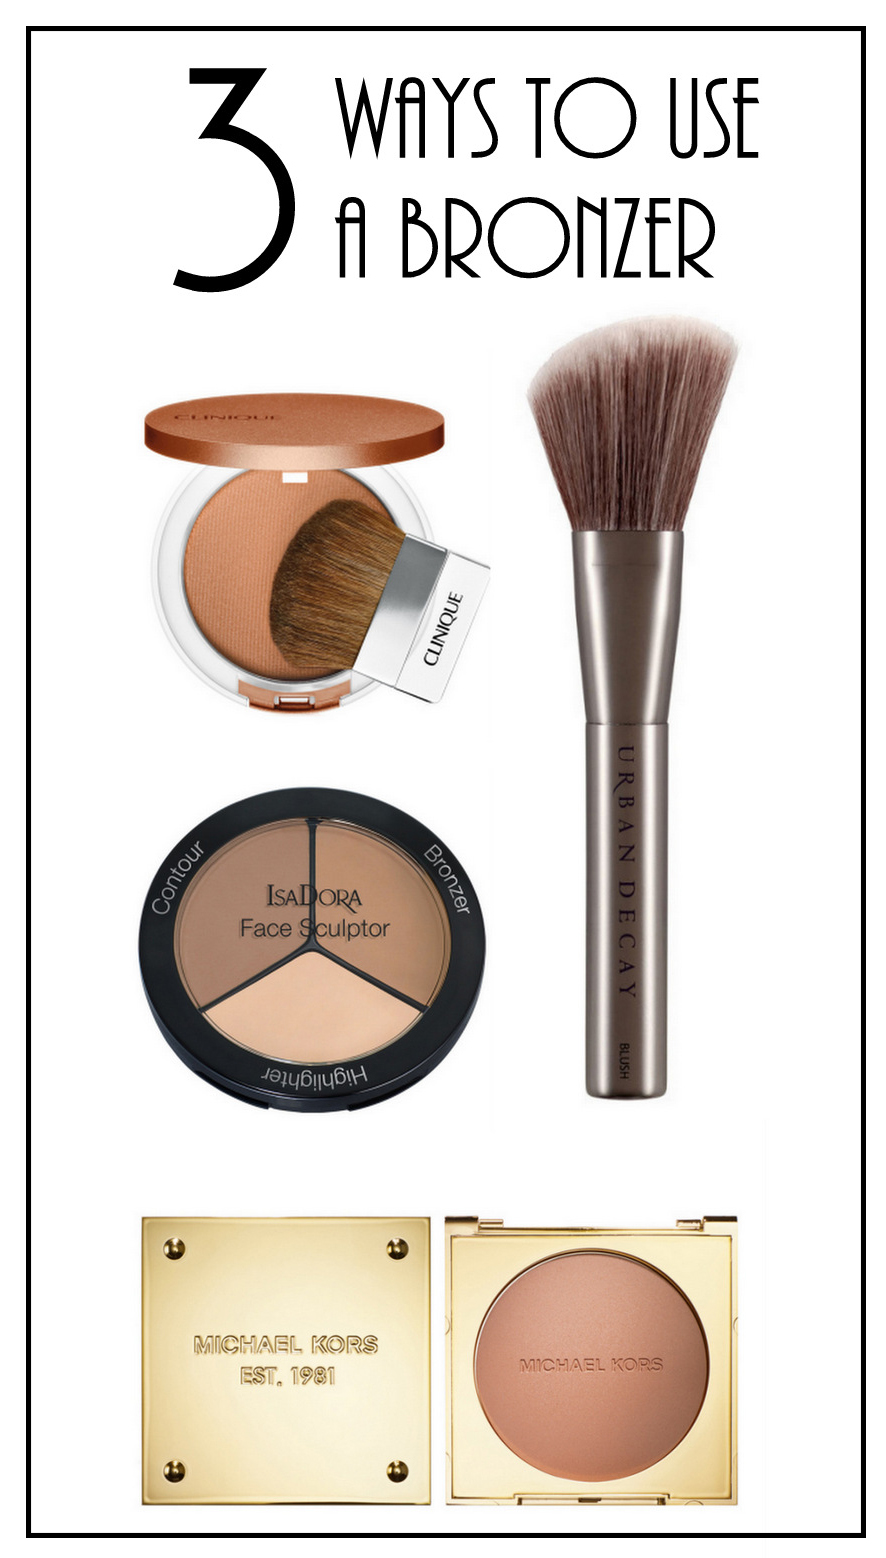 3 ways to use bronzer the fashion folks ways to use bronzer ccuart Images